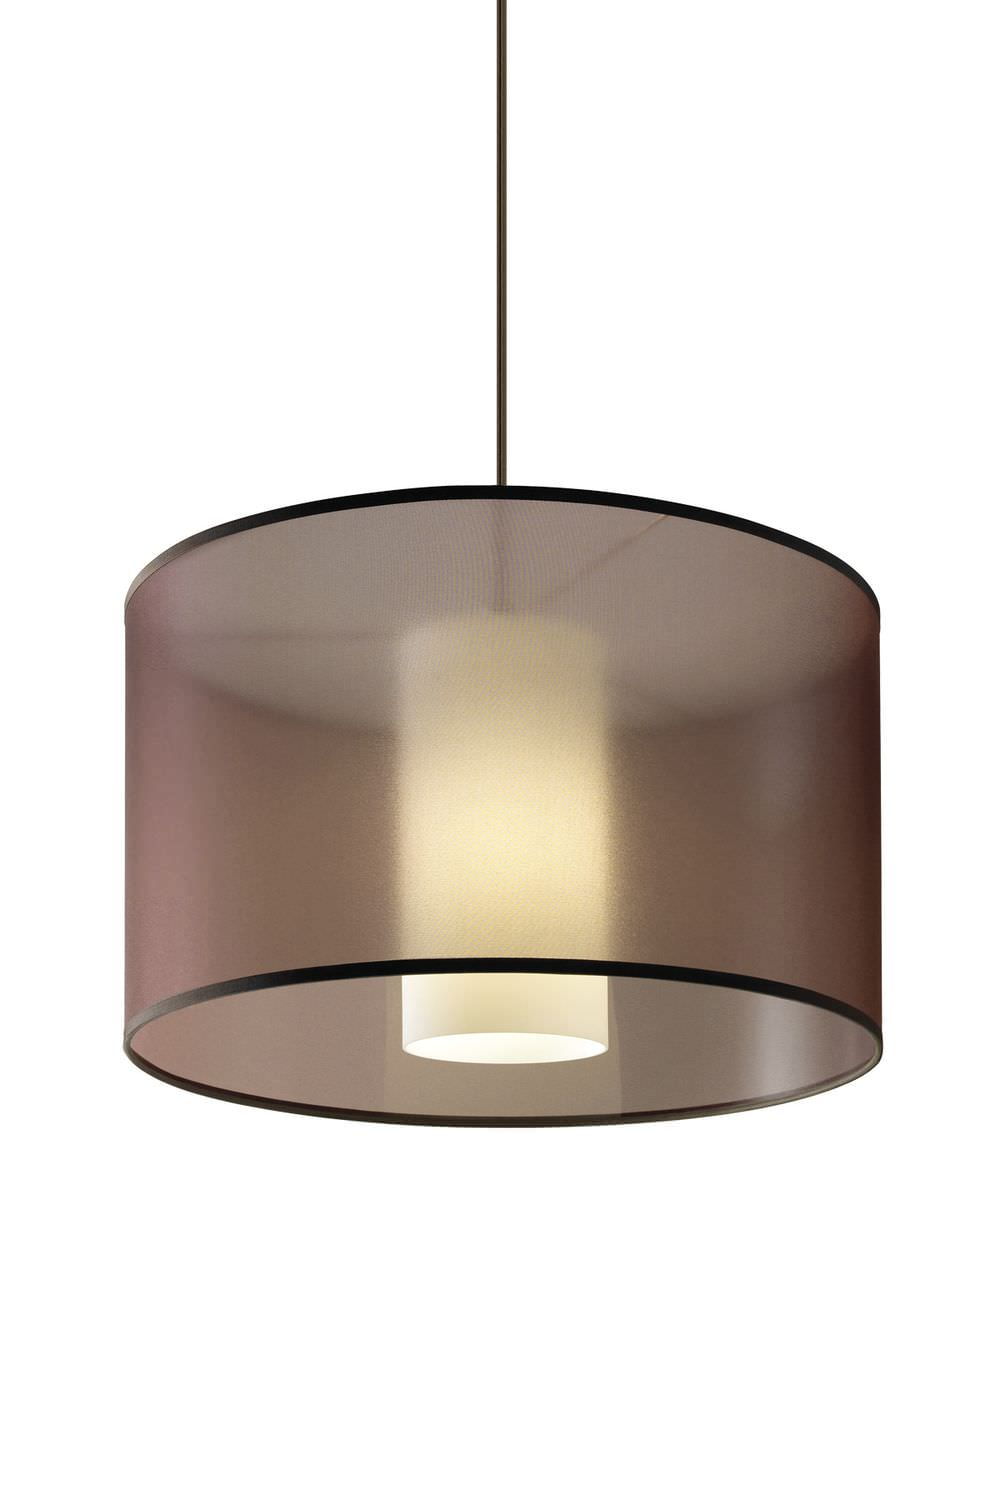 Pendant lamp contemporary glass dimmable dillon tech lighting pendant lamp contemporary glass dimmable mozeypictures Choice Image